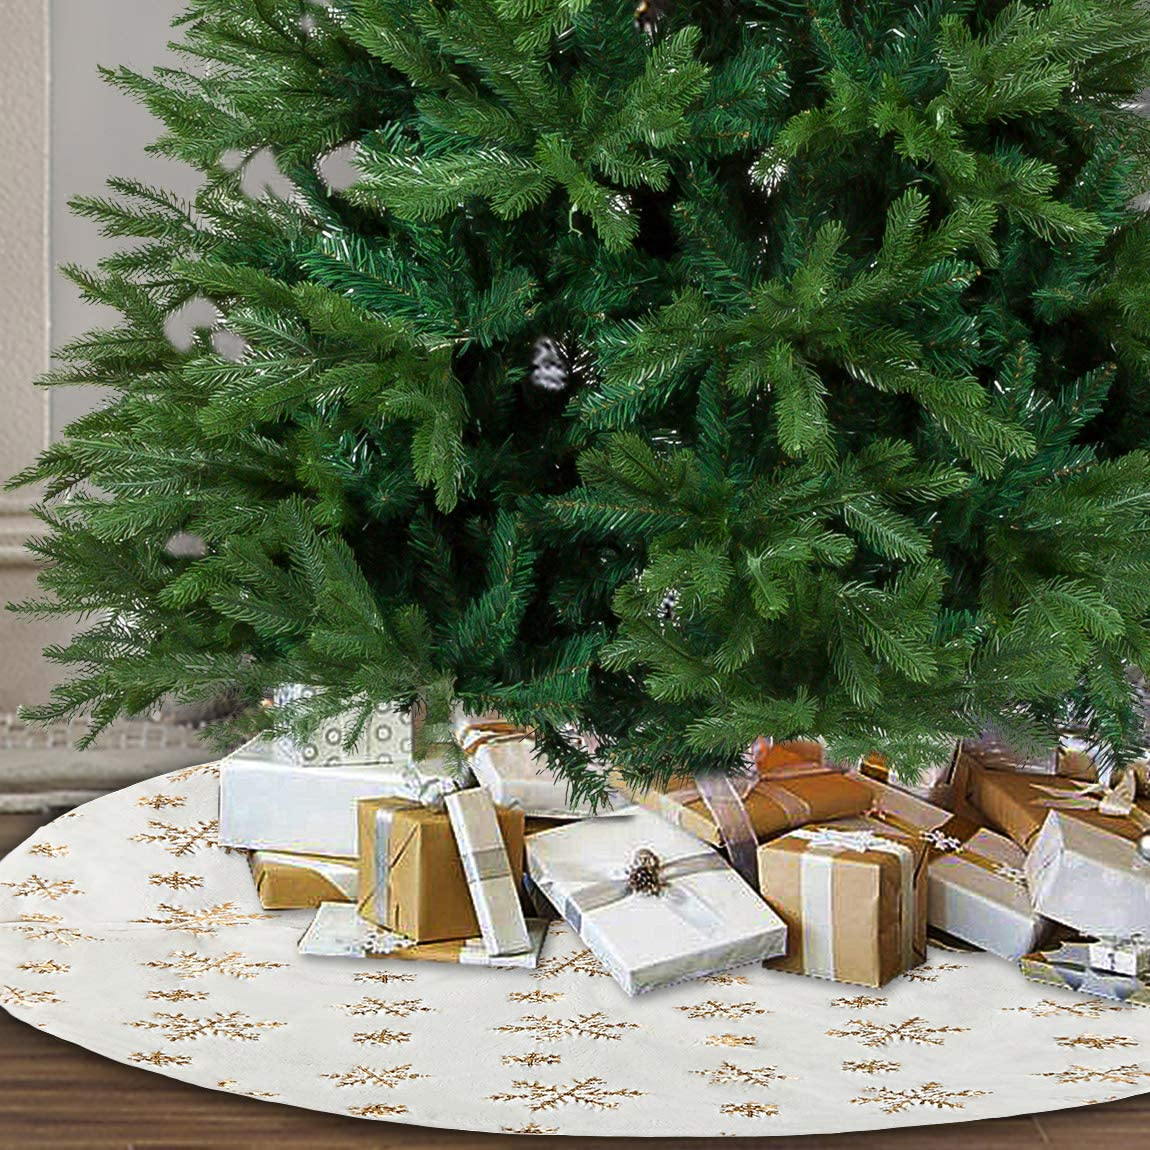 PrettyQueen 48 Inch Christmas Tree Skirt,White&Gold Luxury Faux Fur Tree-Skirt with Snowflakes,Tree Skirt Mat for Christmas Holiday Party Decorations